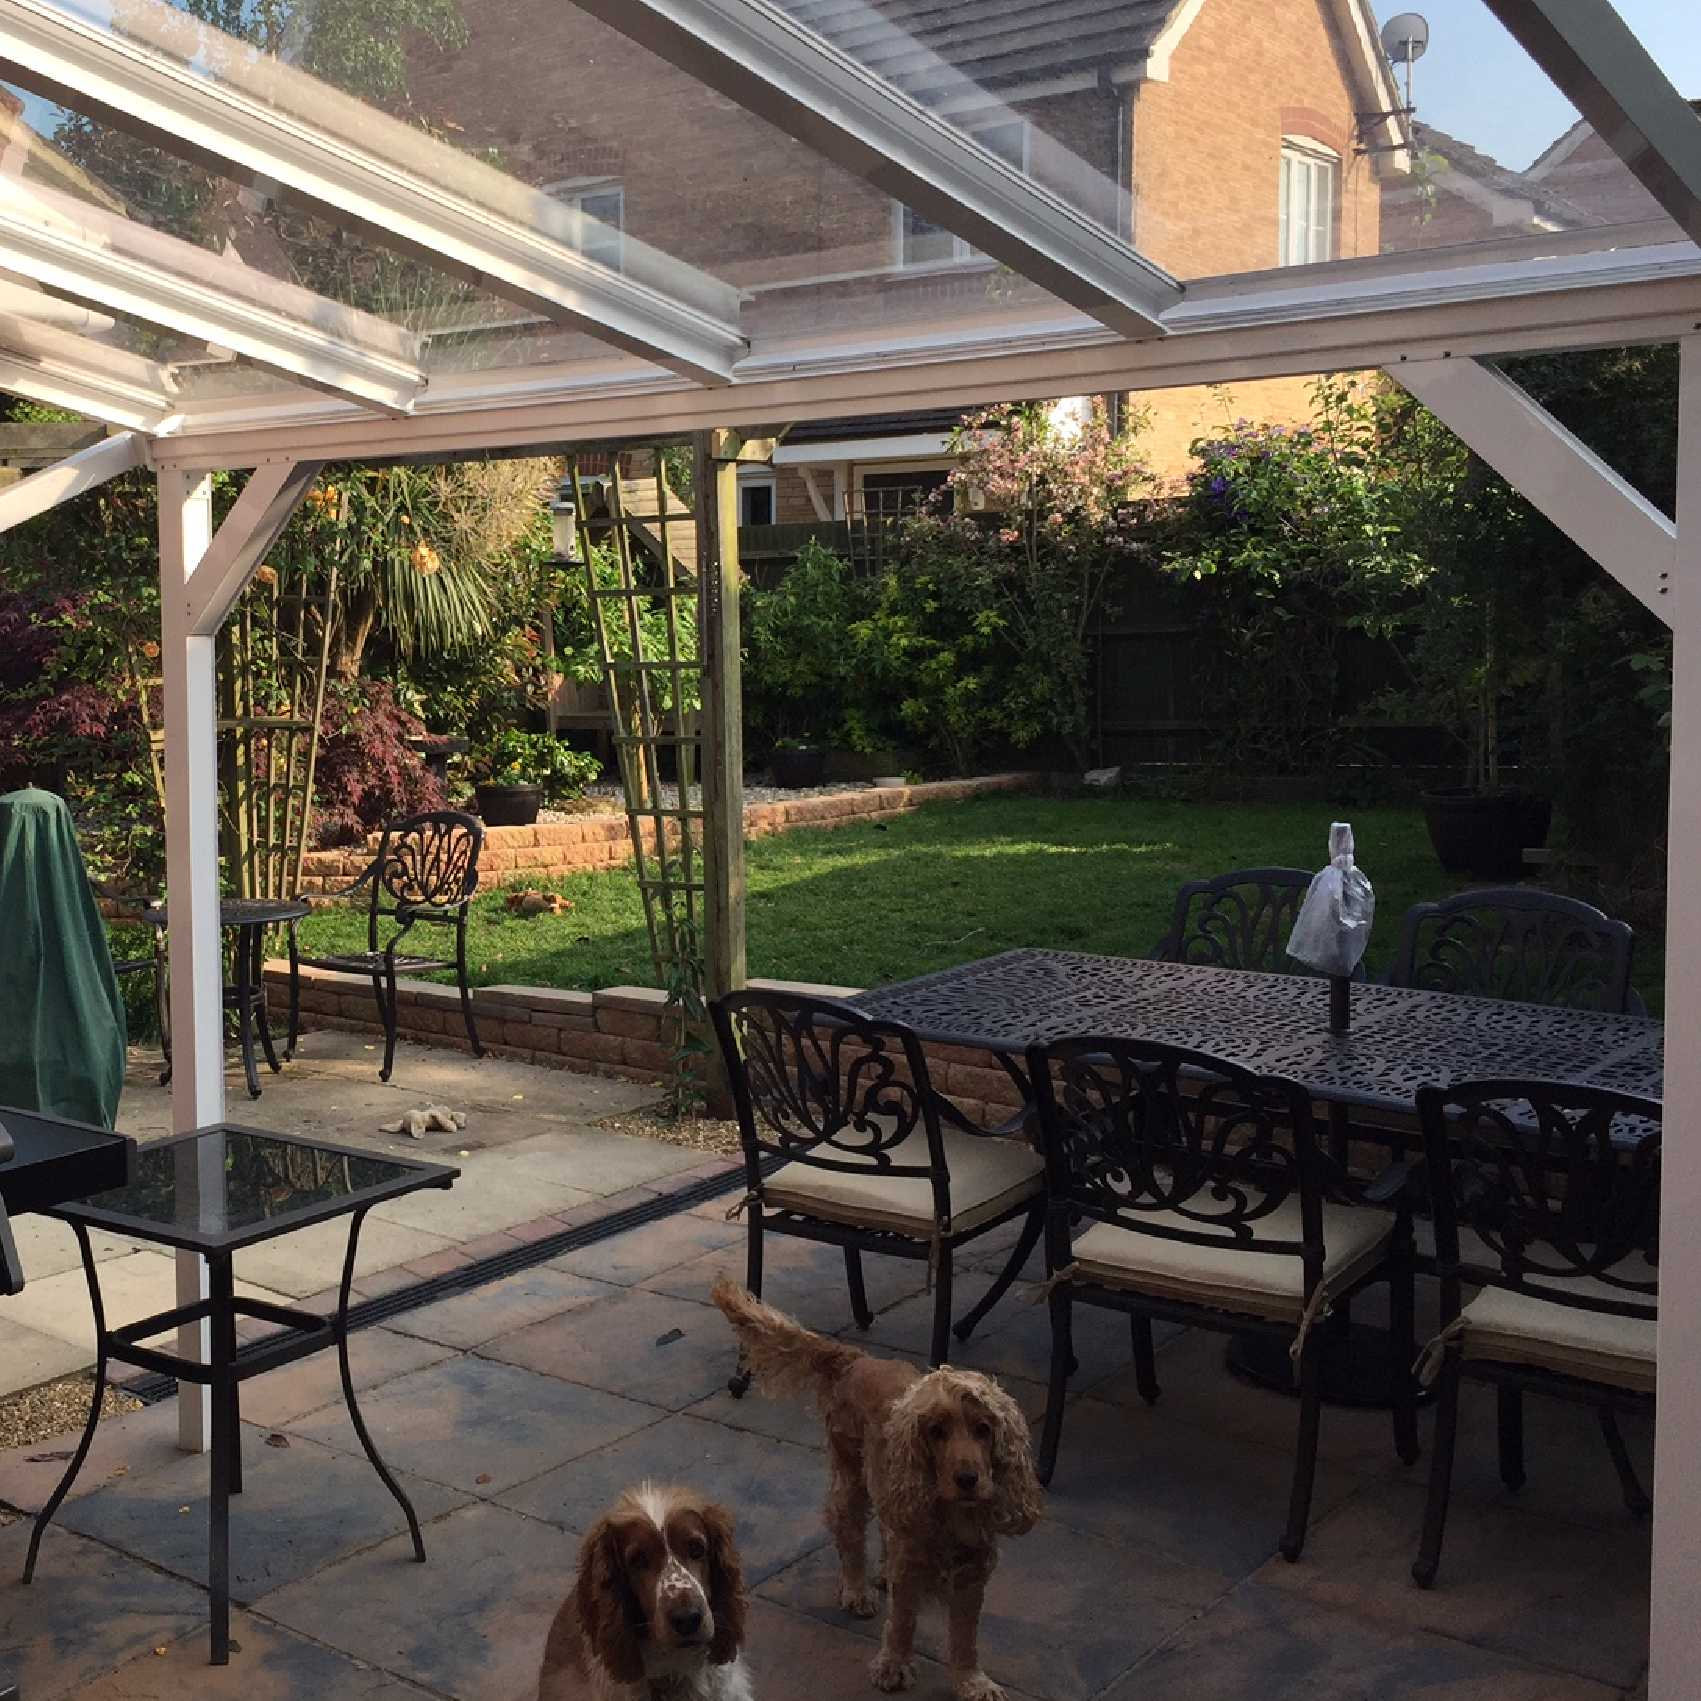 Affordable Omega Smart White Lean-To Canopy with 6mm Glass Clear Plate Polycarbonate Glazing - 10.0m (W) x 4.0m (P), (5) Supporting Posts